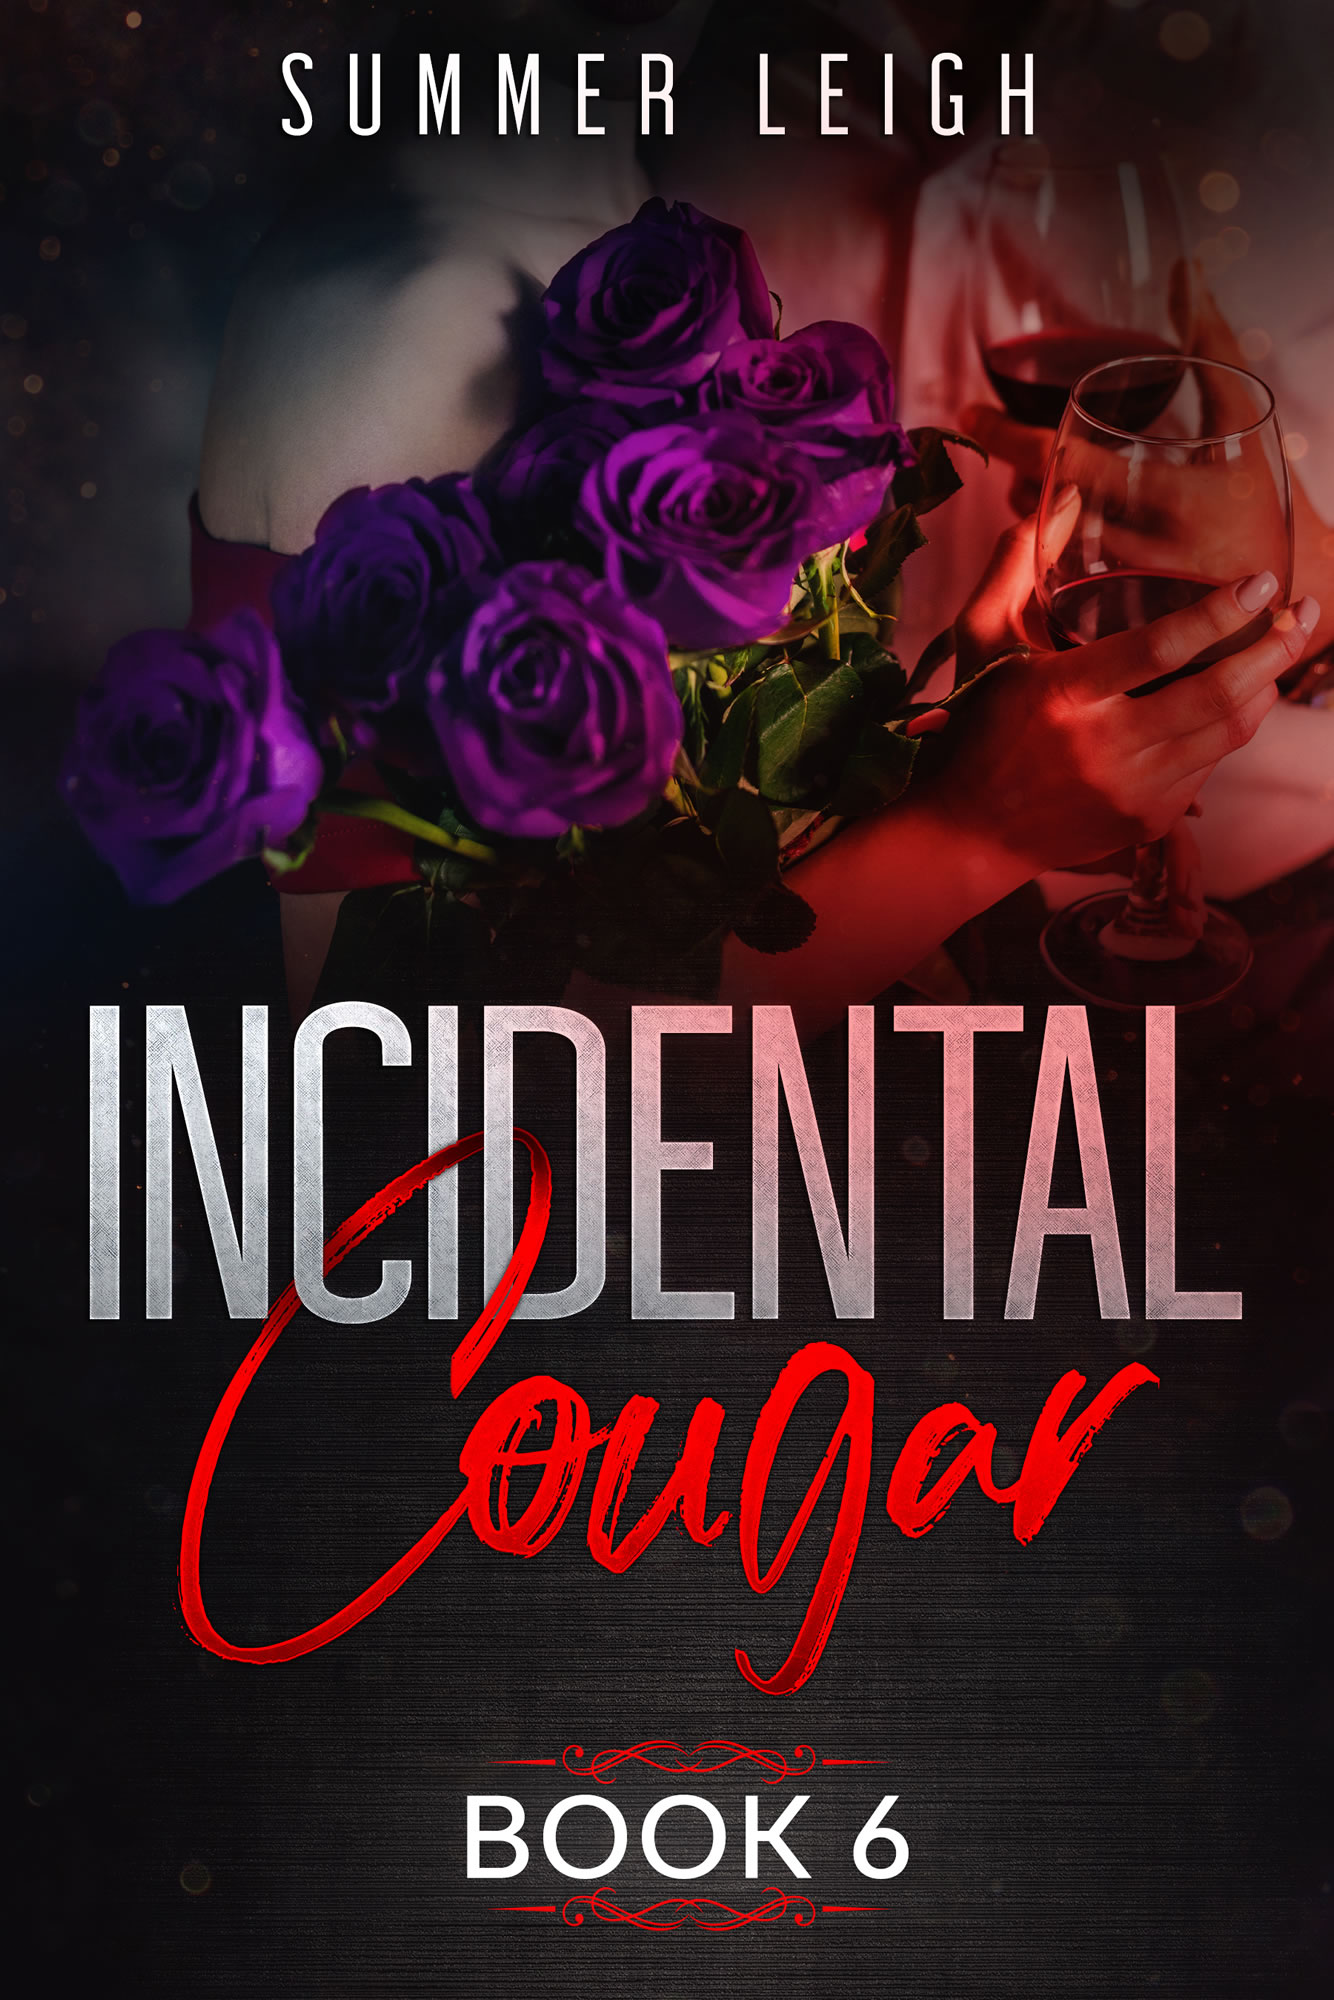 Incidental Cougar book 6